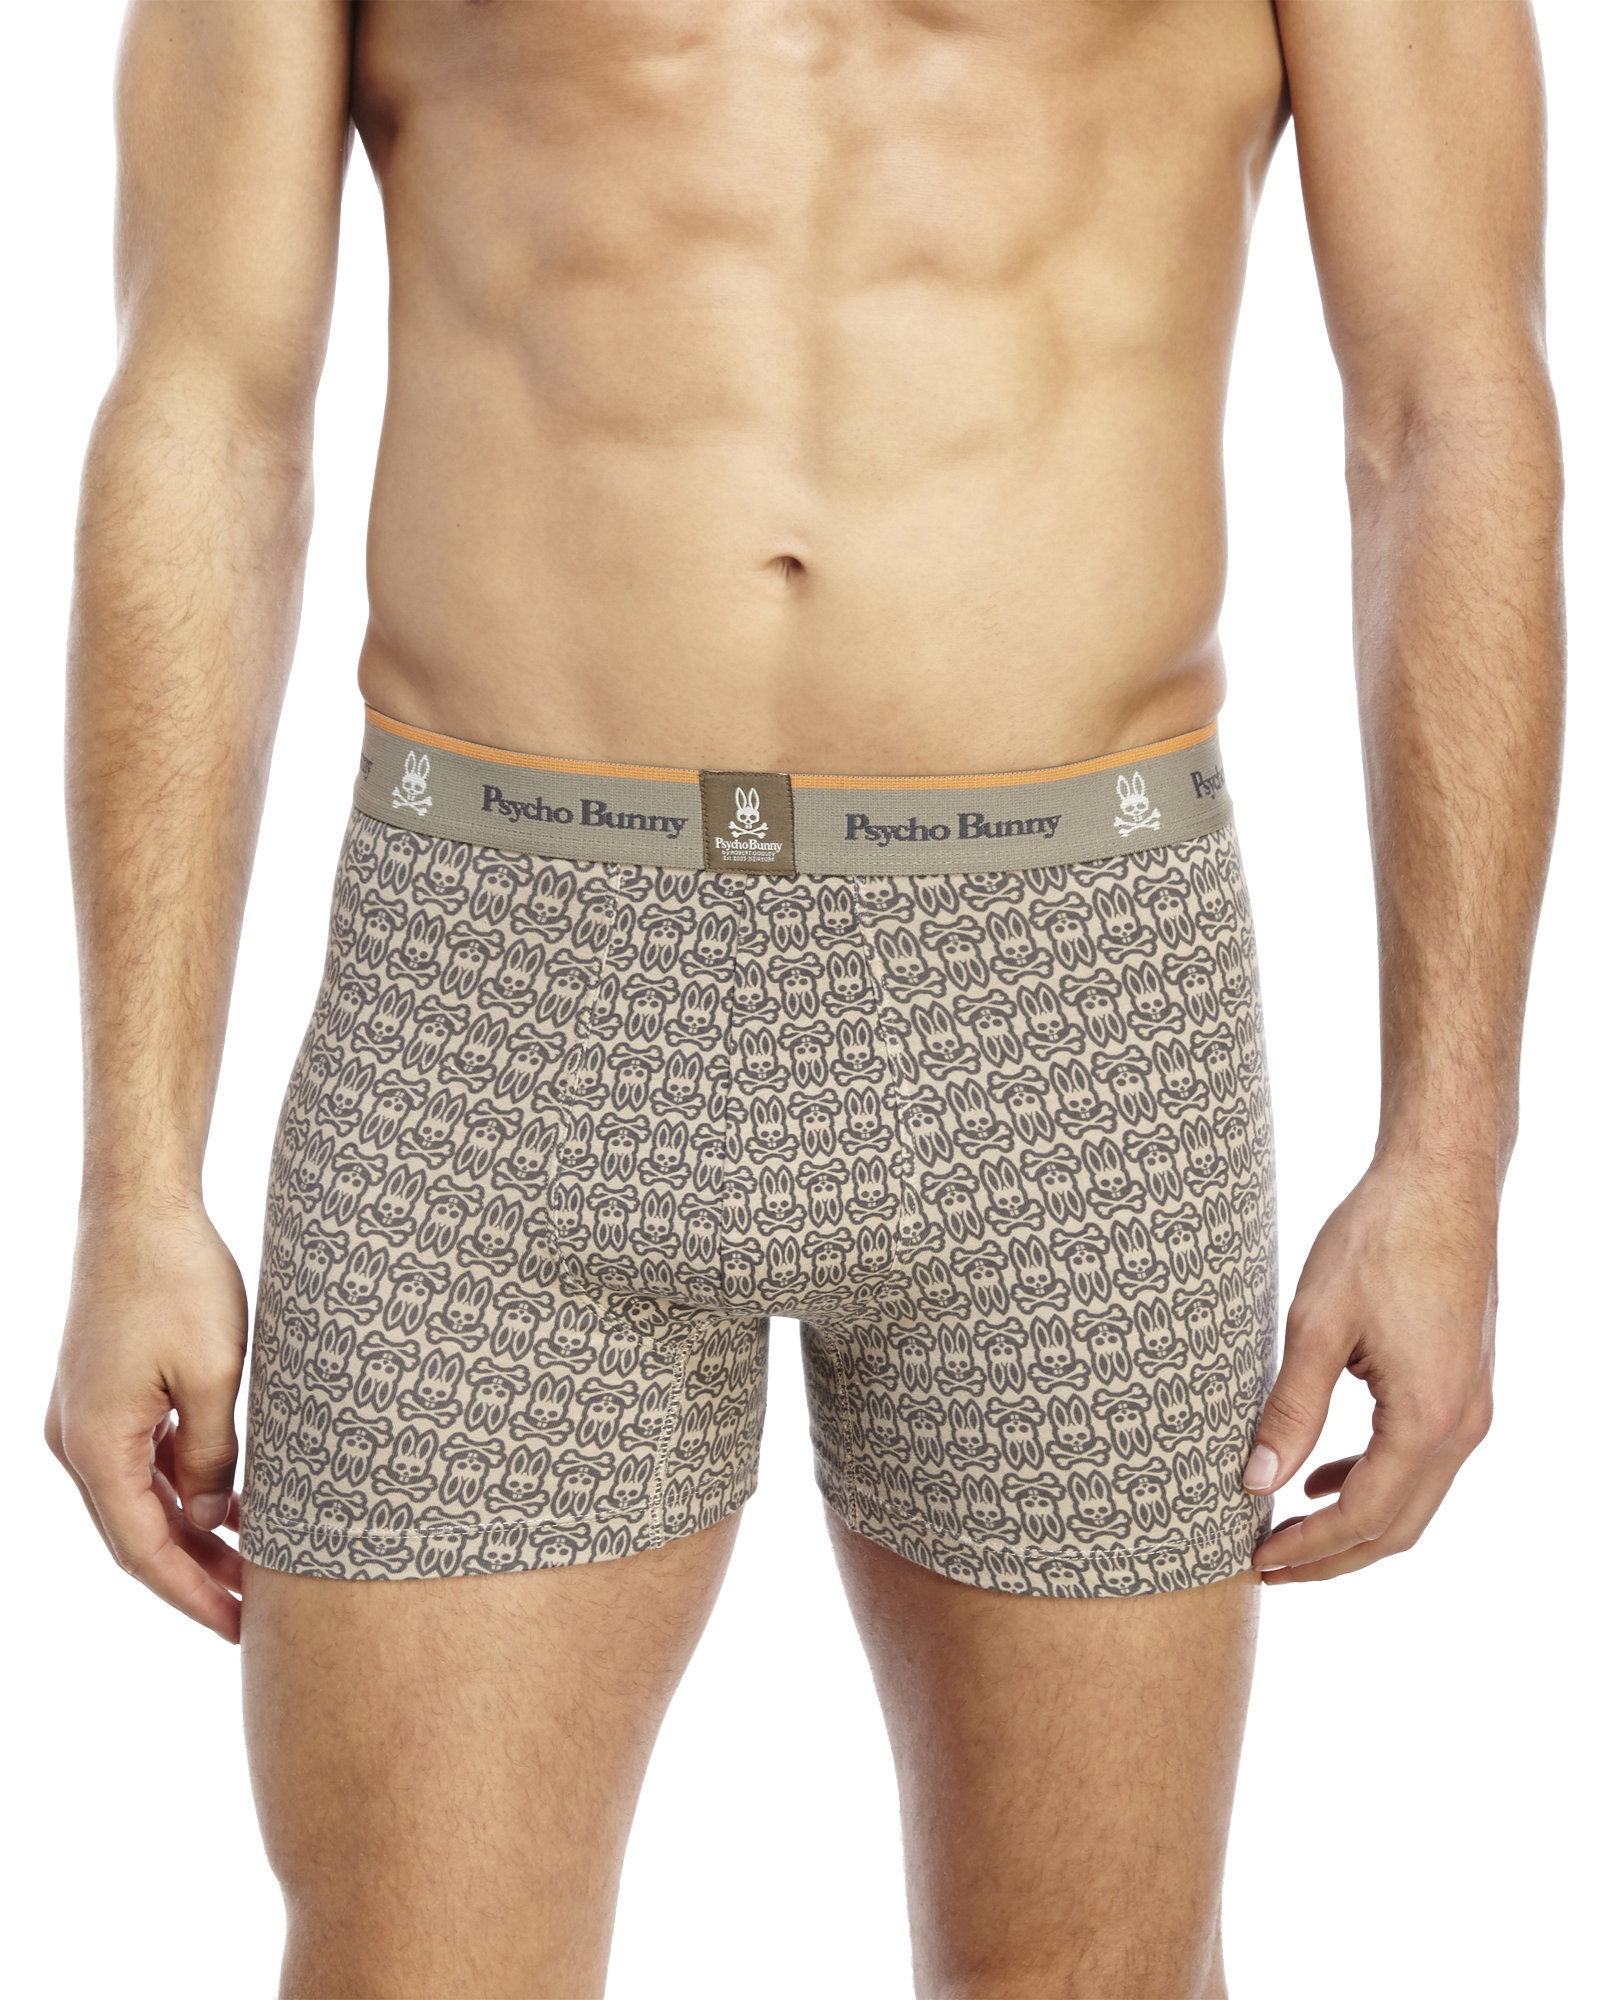 Knitting Mens Underwear : Lyst psycho bunny knit boxer briefs for men